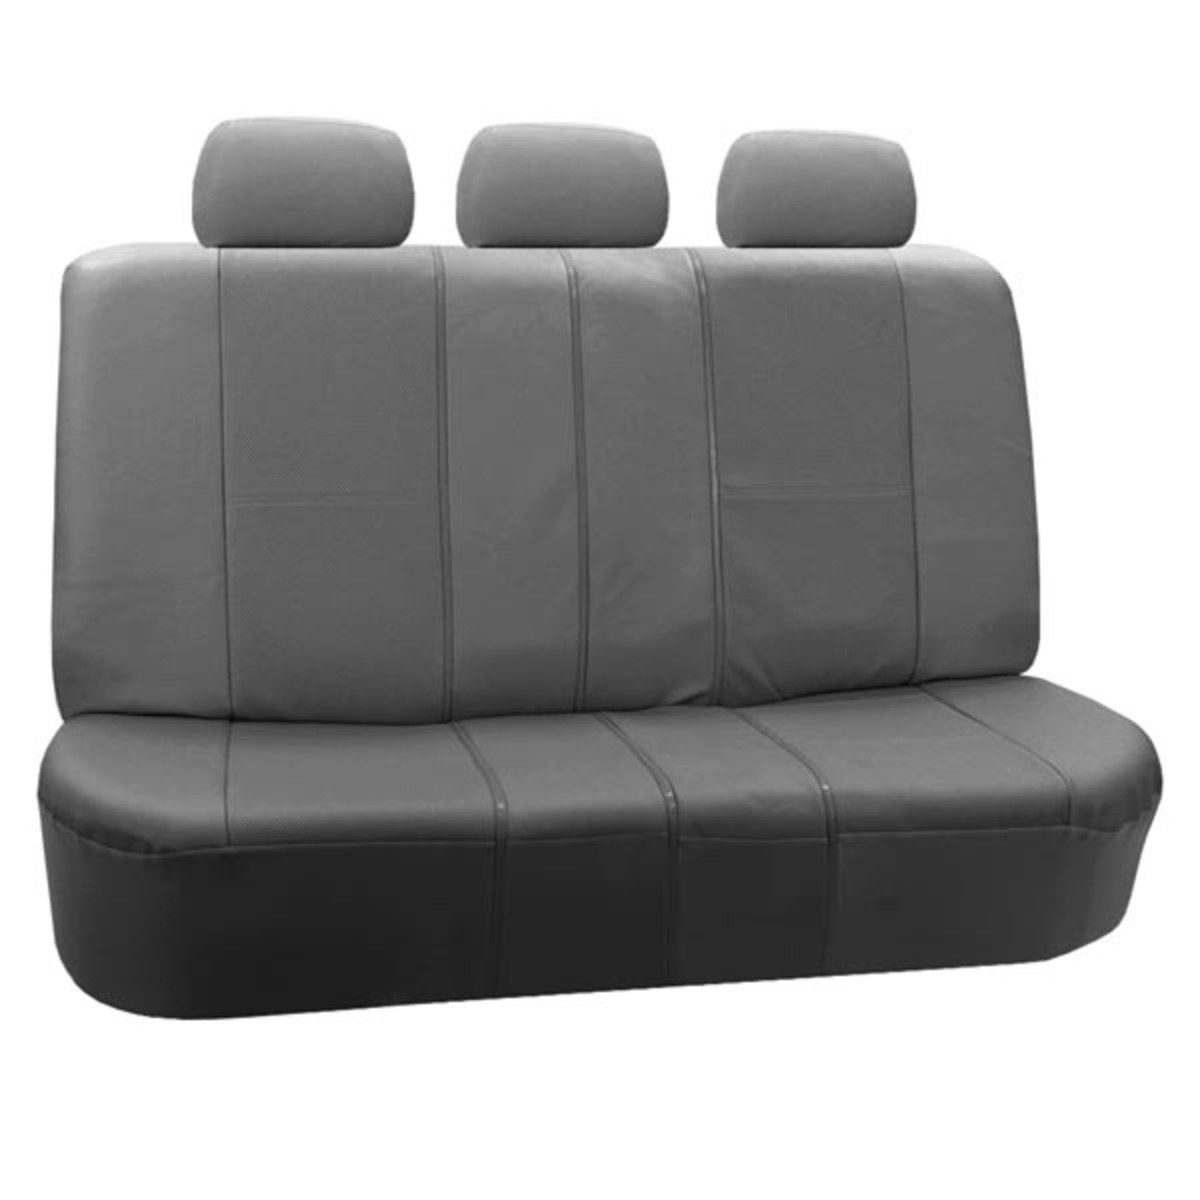 88-PU007013_gray seat cover 1